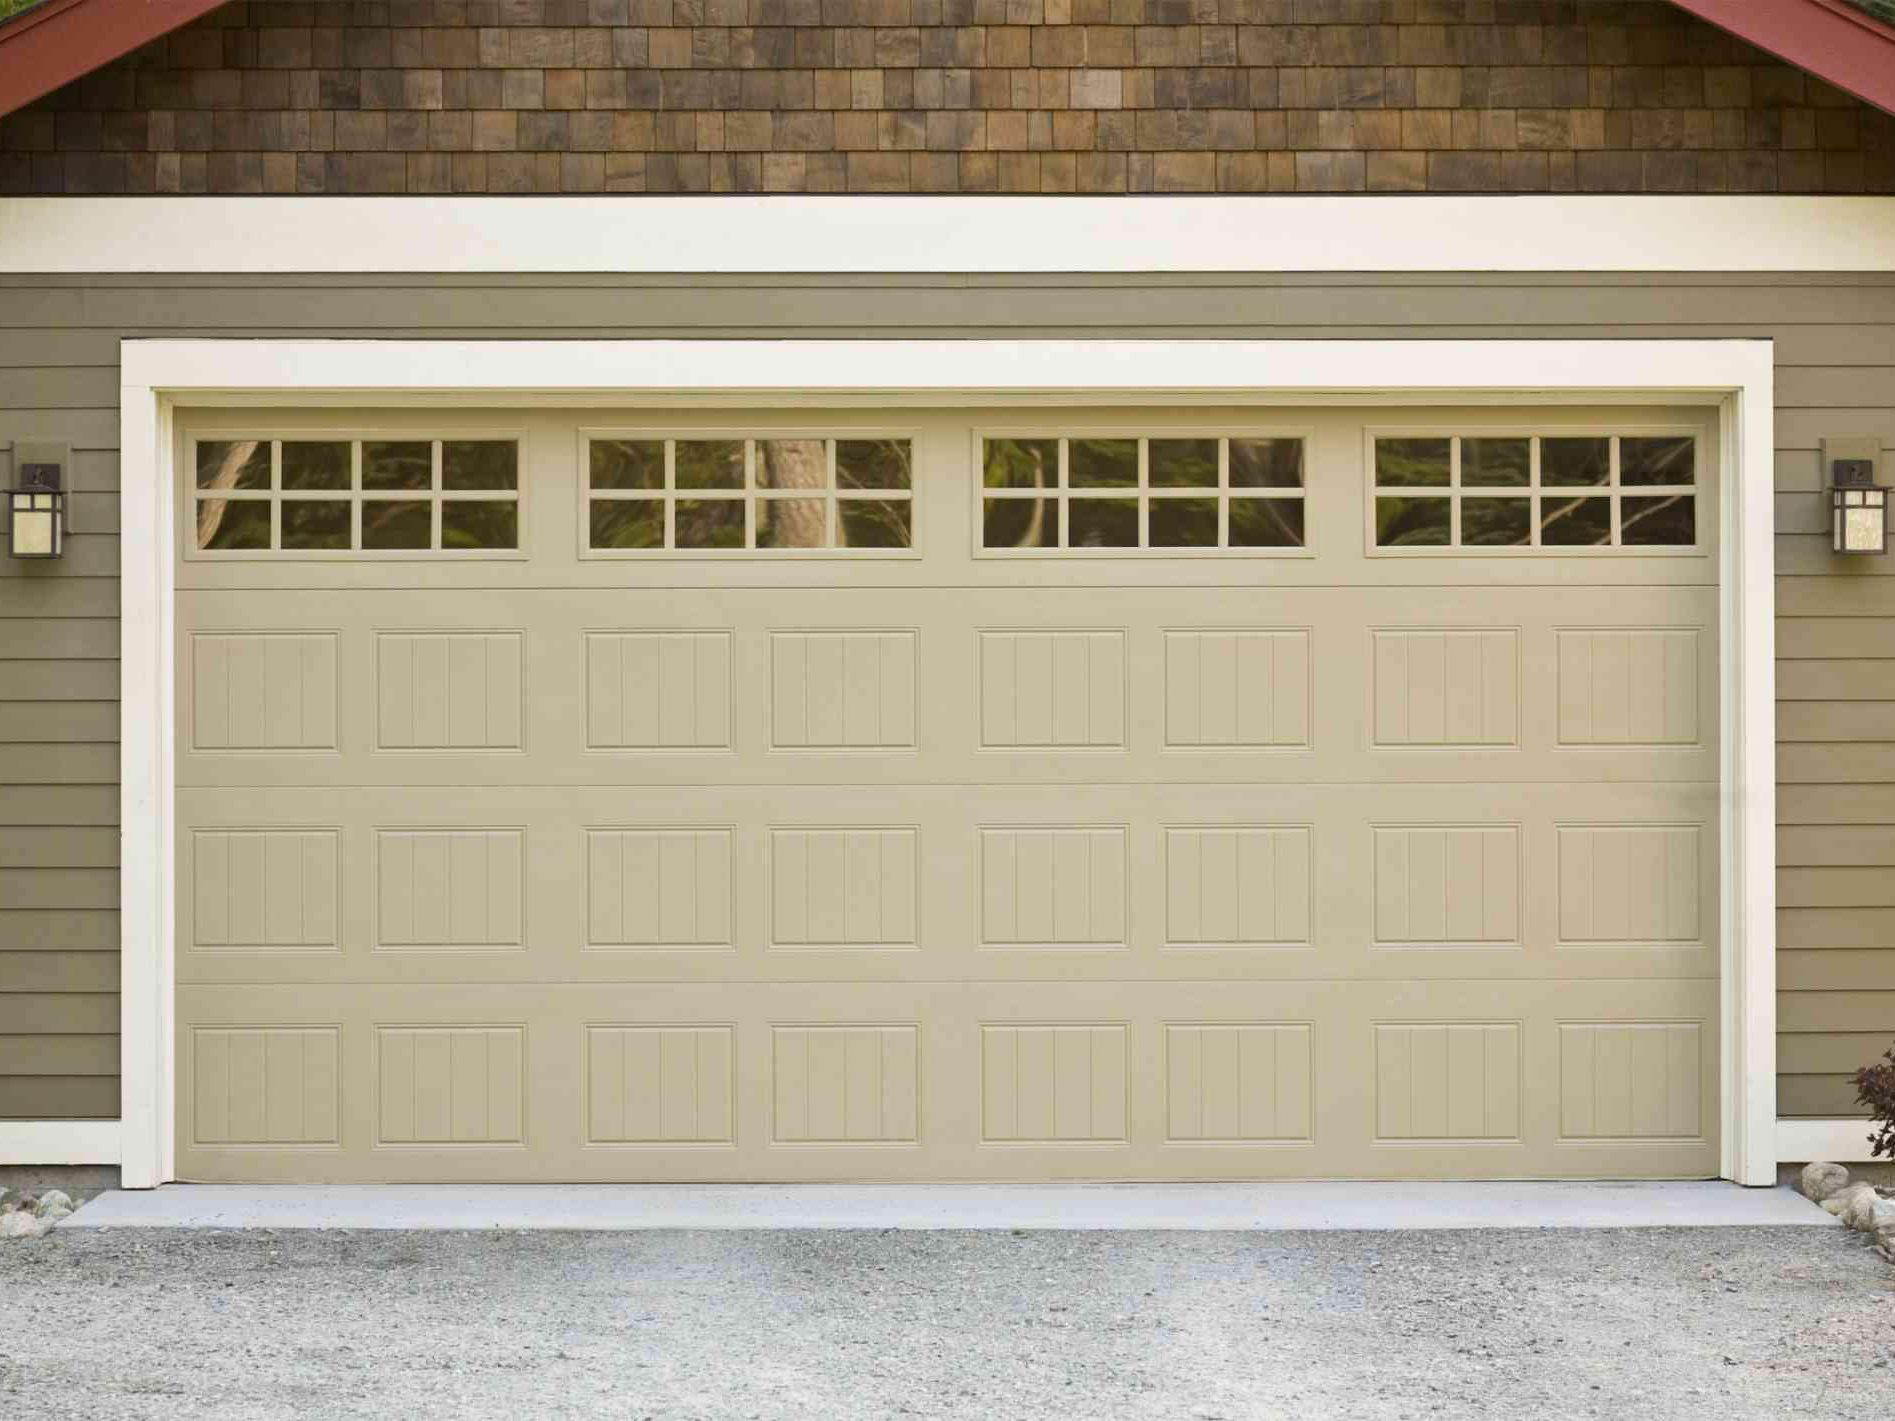 How Much Should a New Garage Door Cost to Be Installed?